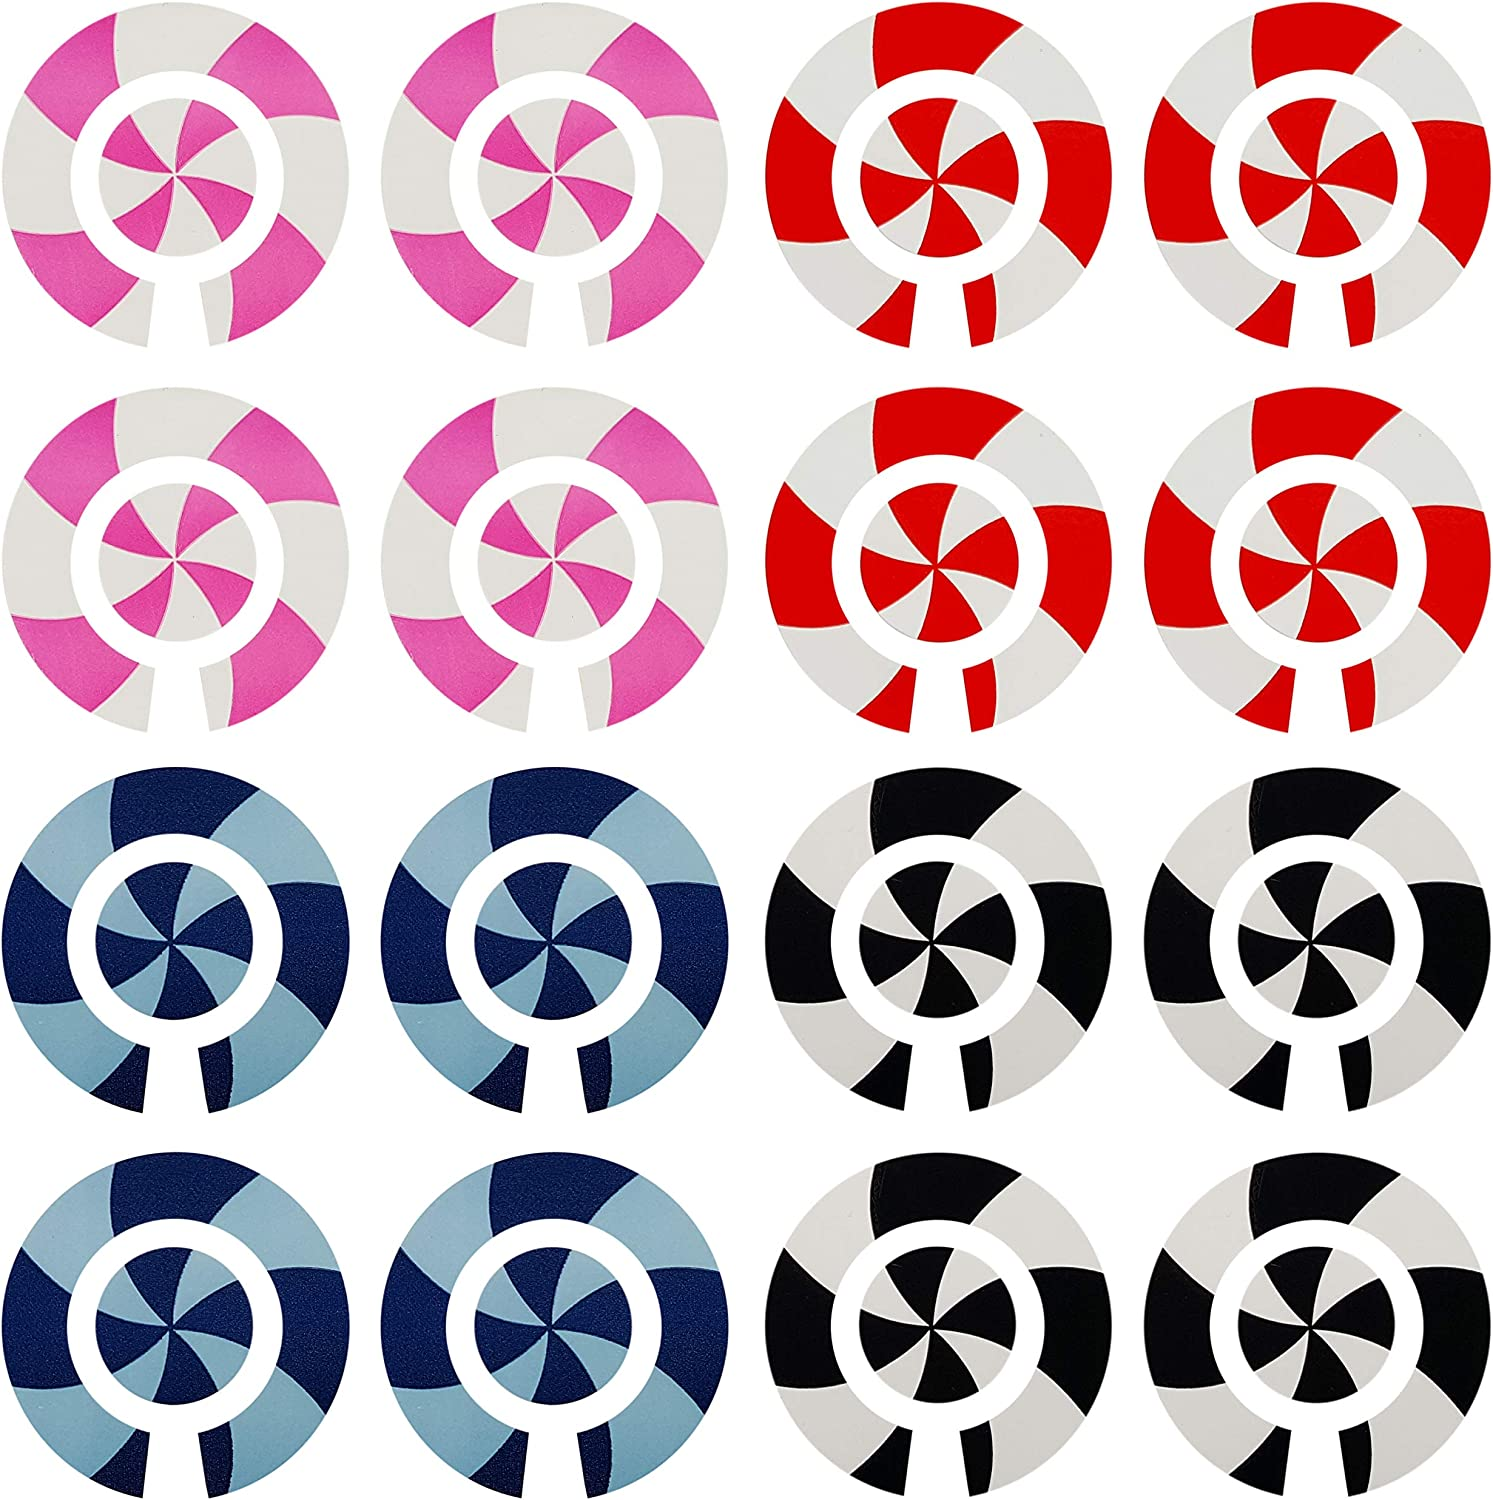 ACCLAIM Self Adhesive Graduated Spiral Bowls Bowlers Identity Stickers Sets Of 4